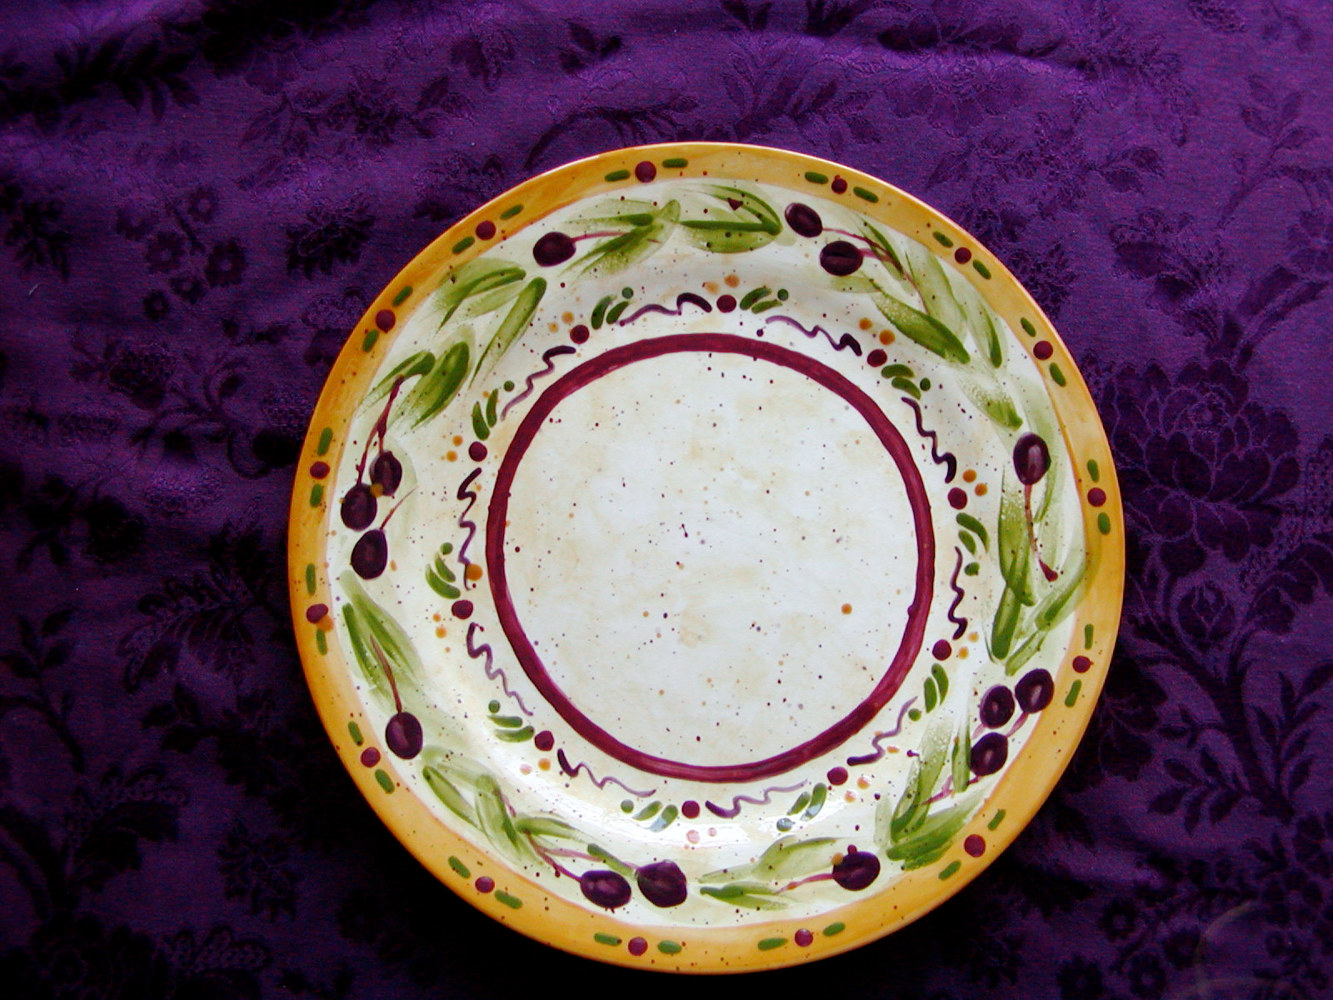 Painting Italianate Eclectic Glazeworks: Dinner Plate Design 1 by Victoria Avila